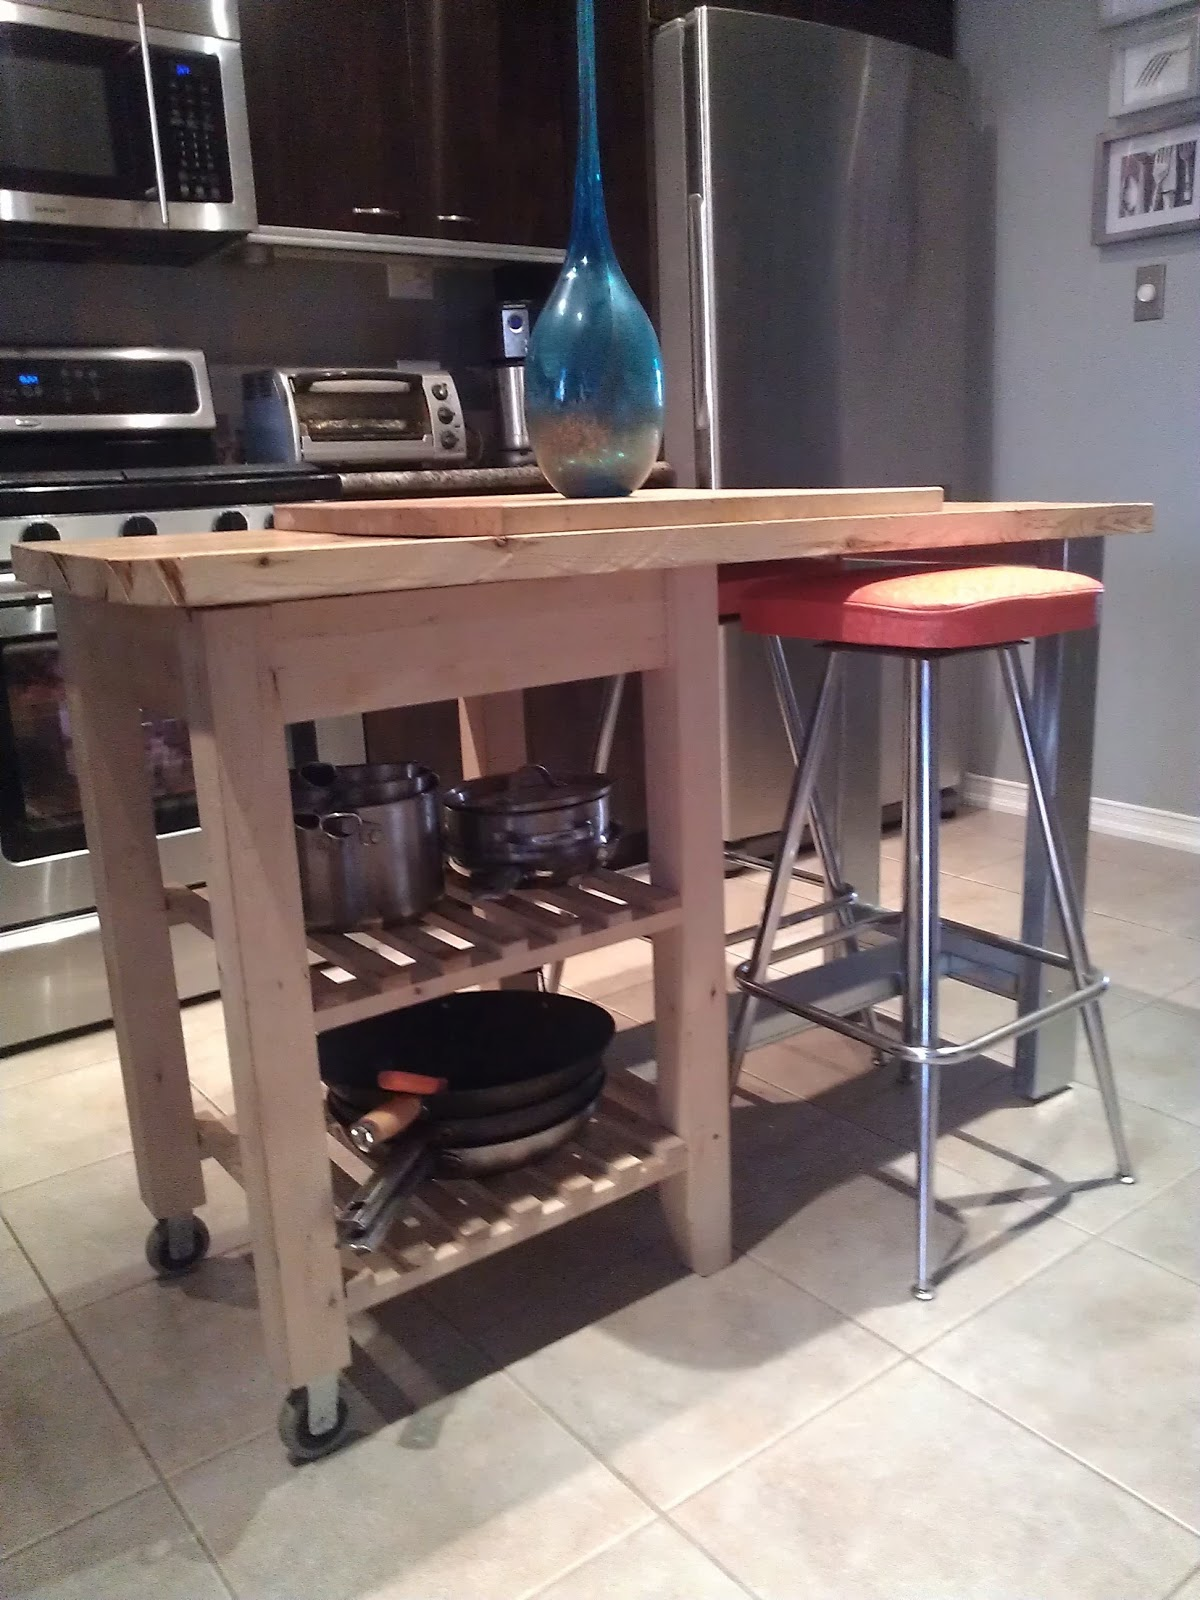 re-tiquedrae bond: kitchen island ikea hack